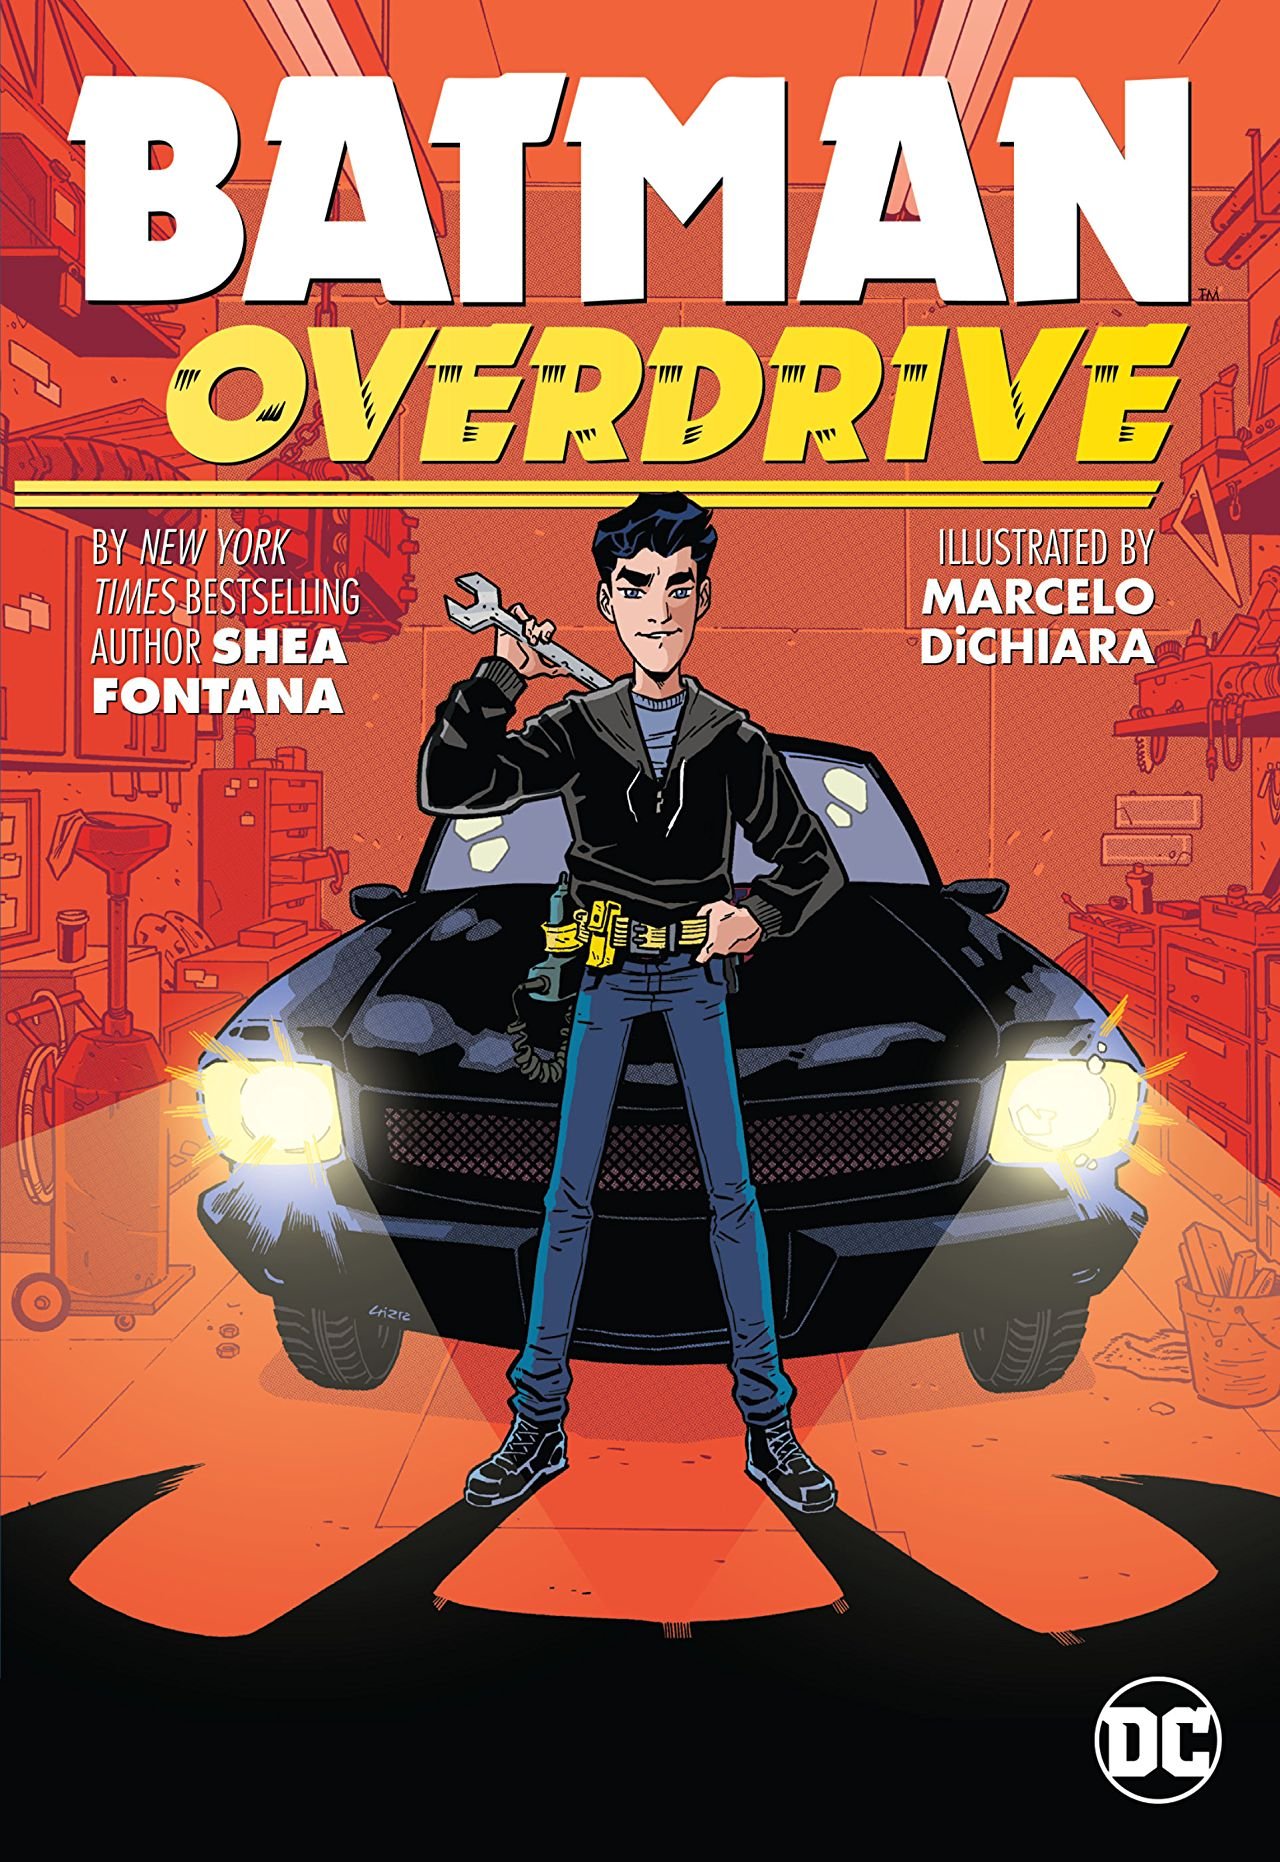 Batman: Overdrive Review